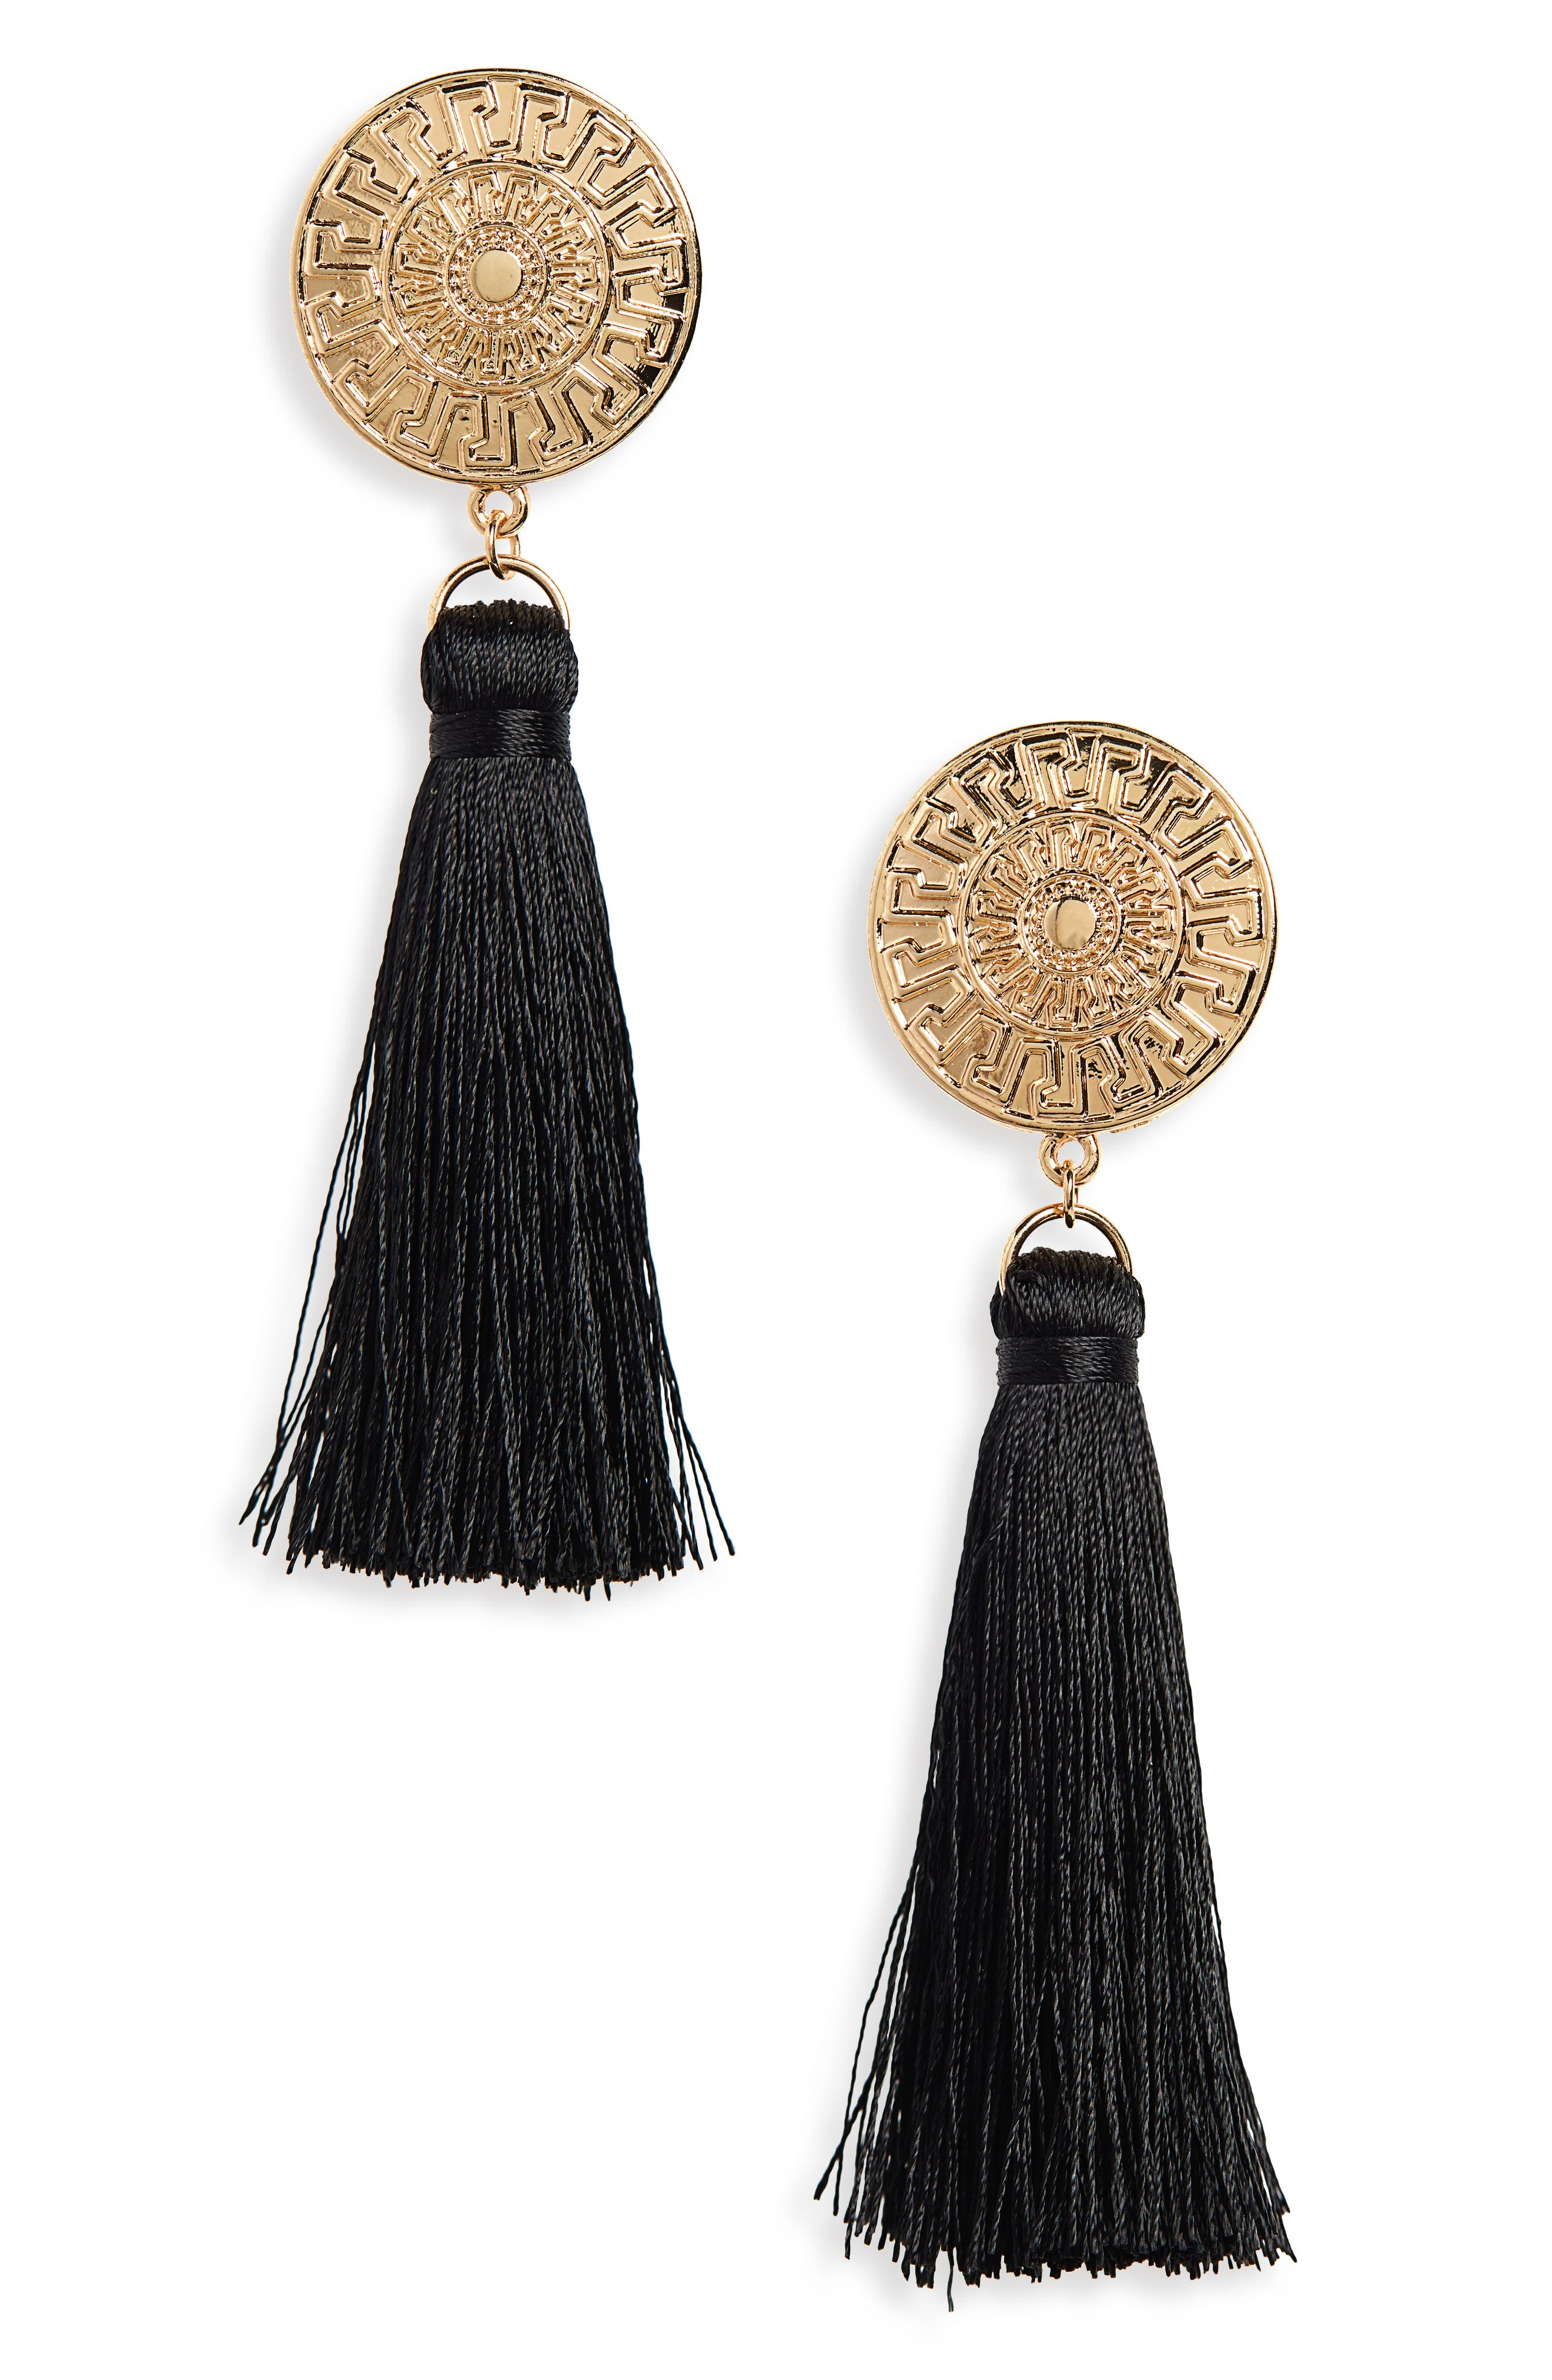 Golden Coin Tassel Earrings,                             Main thumbnail 1, color,                             710